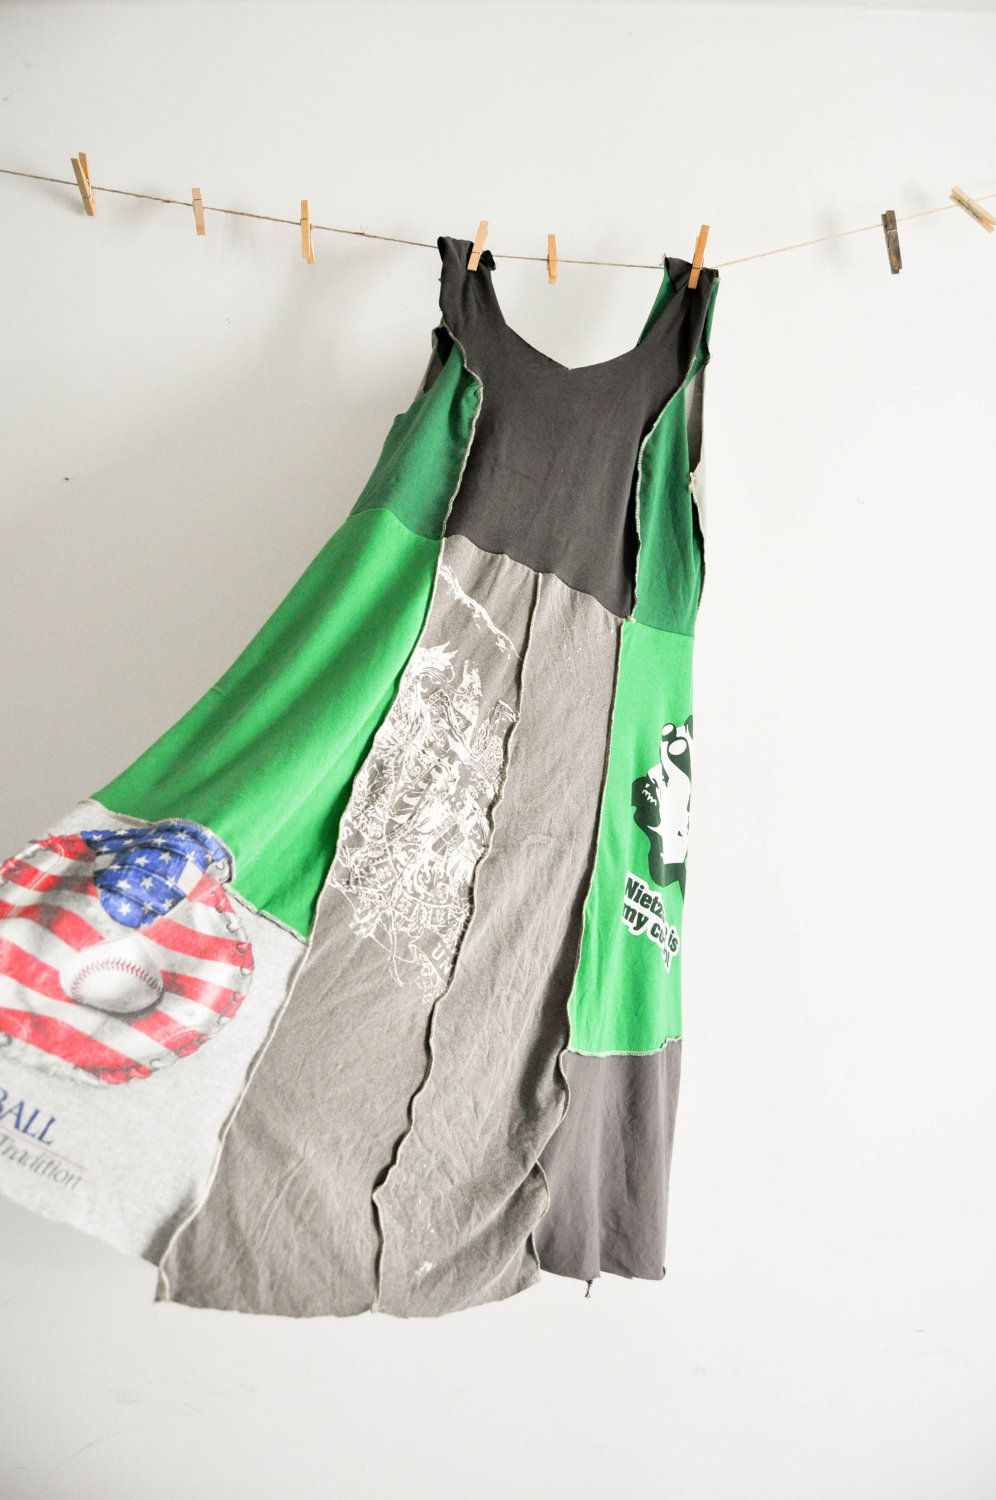 Use old tshirts and alabama chanin pattern to make upcycled dress create pinterest - Idees recyclage vetements ...